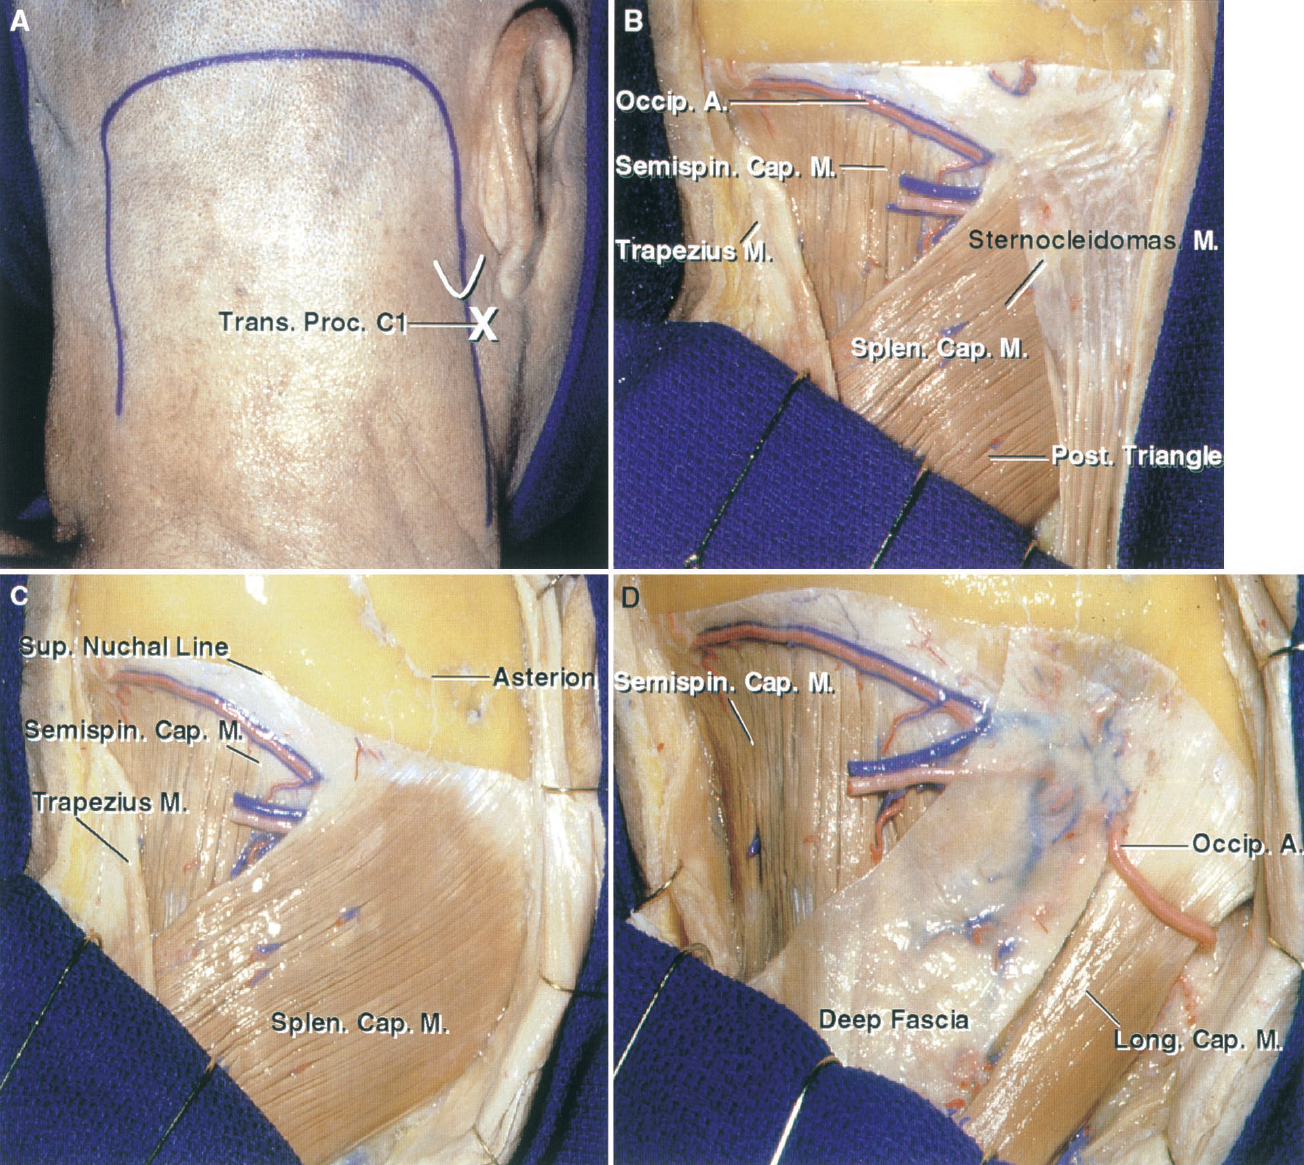 FIGURE 7.2. A–D. Far-lateral and transcondylar approach. A, a suboccipital scalp flap is commonly selected for the far-lateral exposure. The medial limb extends downward in the midline so that a wide upper cervical laminectomy can be completed if needed. The lateral limb extends below the C1 transverse process, which can be palpated between the mastoid tip and the angle of the jaw to access the vertebral artery as it ascends through the C1 transverse process. In this dissection, the muscles are reflected separately to show their anatomy; however, at an operation, the muscles superficial to the suboccipital triangle can be reflected from the suboccipital area in a single layer with the scalp flap, leaving a cuff of suboccipital muscle and fascia attached along the superior nuchal line to aid in closure. B, the scalp flap has been reflected to expose the sternocleidomastoid and trapezius, the edges of which form the margins of the posterior triangle of the neck. The splenius and semispinalis capitis are in the floor of the triangle. C, the sternocleidomastoid has been detached from the lateral part of the superior nuchal line and reflected laterally to expose the splenius capitis, which is attached just below the line. The asterion, located at the junction of the lambdoid, occipitomastoid, and parietomastoid sutures, most commonly overlies the lower half of the junction of the transverse and sigmoid sinuses. D, the splenius capitis has been reflected to expose the longissimus capitis and deep cervical fascia. The occipital artery may pass superficial or deep to the longissimus capitis. A., artery; Atl., atlanto; Br., branch; Cap., capitis; CN, cranial nerve; Dent., dentate; Digast., digastric; Dors., dorsal; Gang., ganglion; Hypogl., hypoglossal; Inf., inferior; Lat., lateralis; Lev., levator; Lig., ligament; Long., longissimus; M., muscle; Maj., major; Mas., mastoid; Memb., membrane; Men., meningeal; Min., minor; Musc., muscular; Obl., oblique; Occip., occipital; P.I.C.A., posteroinferior cerebellar artery; Plex., plexus; Post., posterior; Proc., process; Rec., rectus; Scap., scapula; Semispin., semispinalis; Splen., splenius; Suboccip., suboccipital; Sup., superior; Trans., transverse; Vent., ventral; Vert., vertebral.